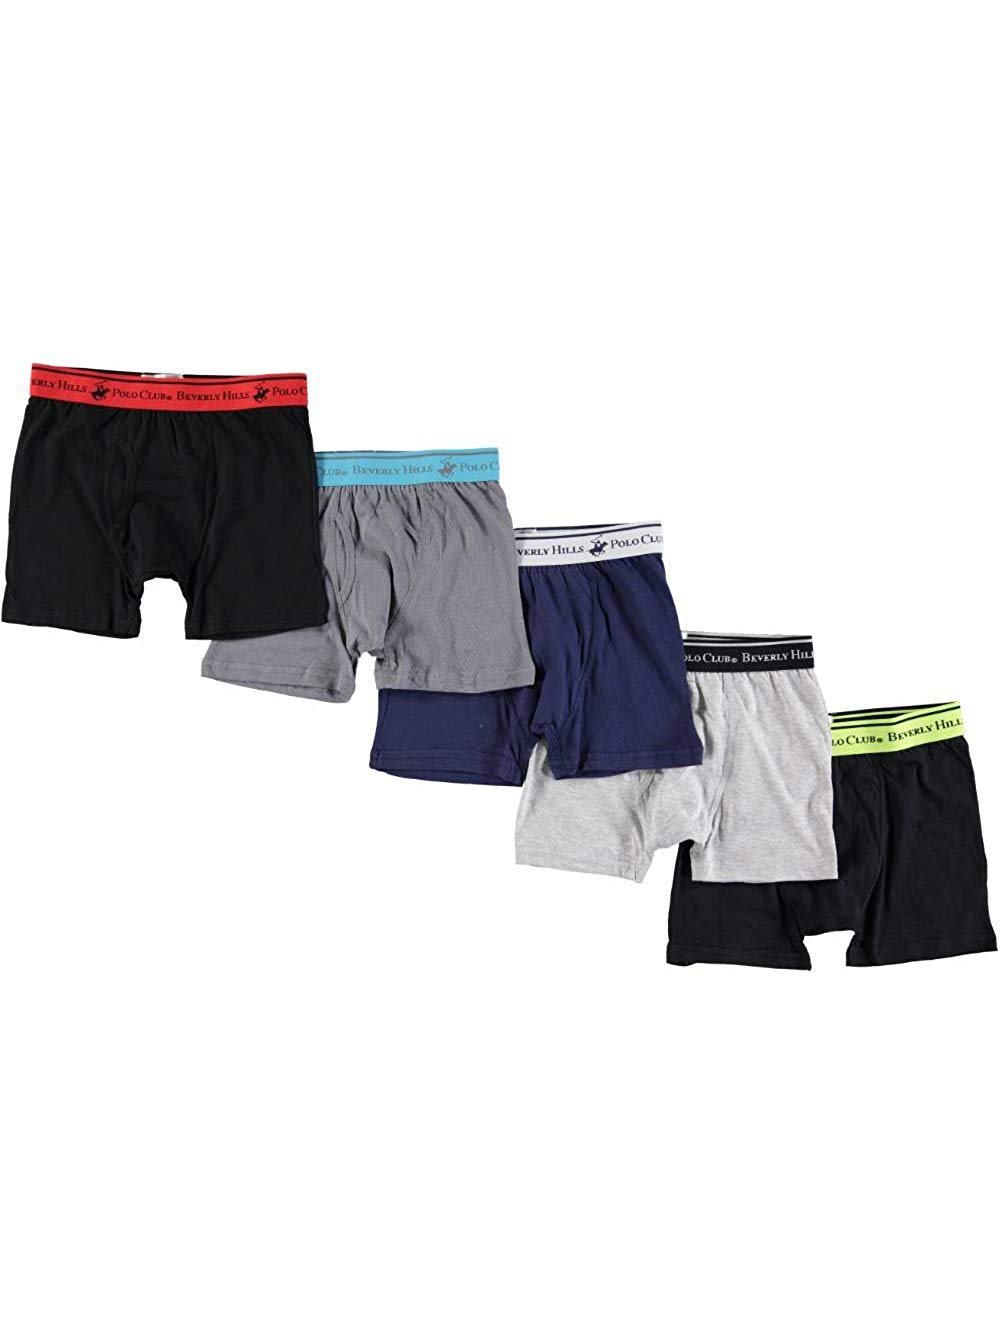 f841a9e350 Get Quotations · Beverly Hills Polo Club Big Boys' 5-Pack Boxer Briefs